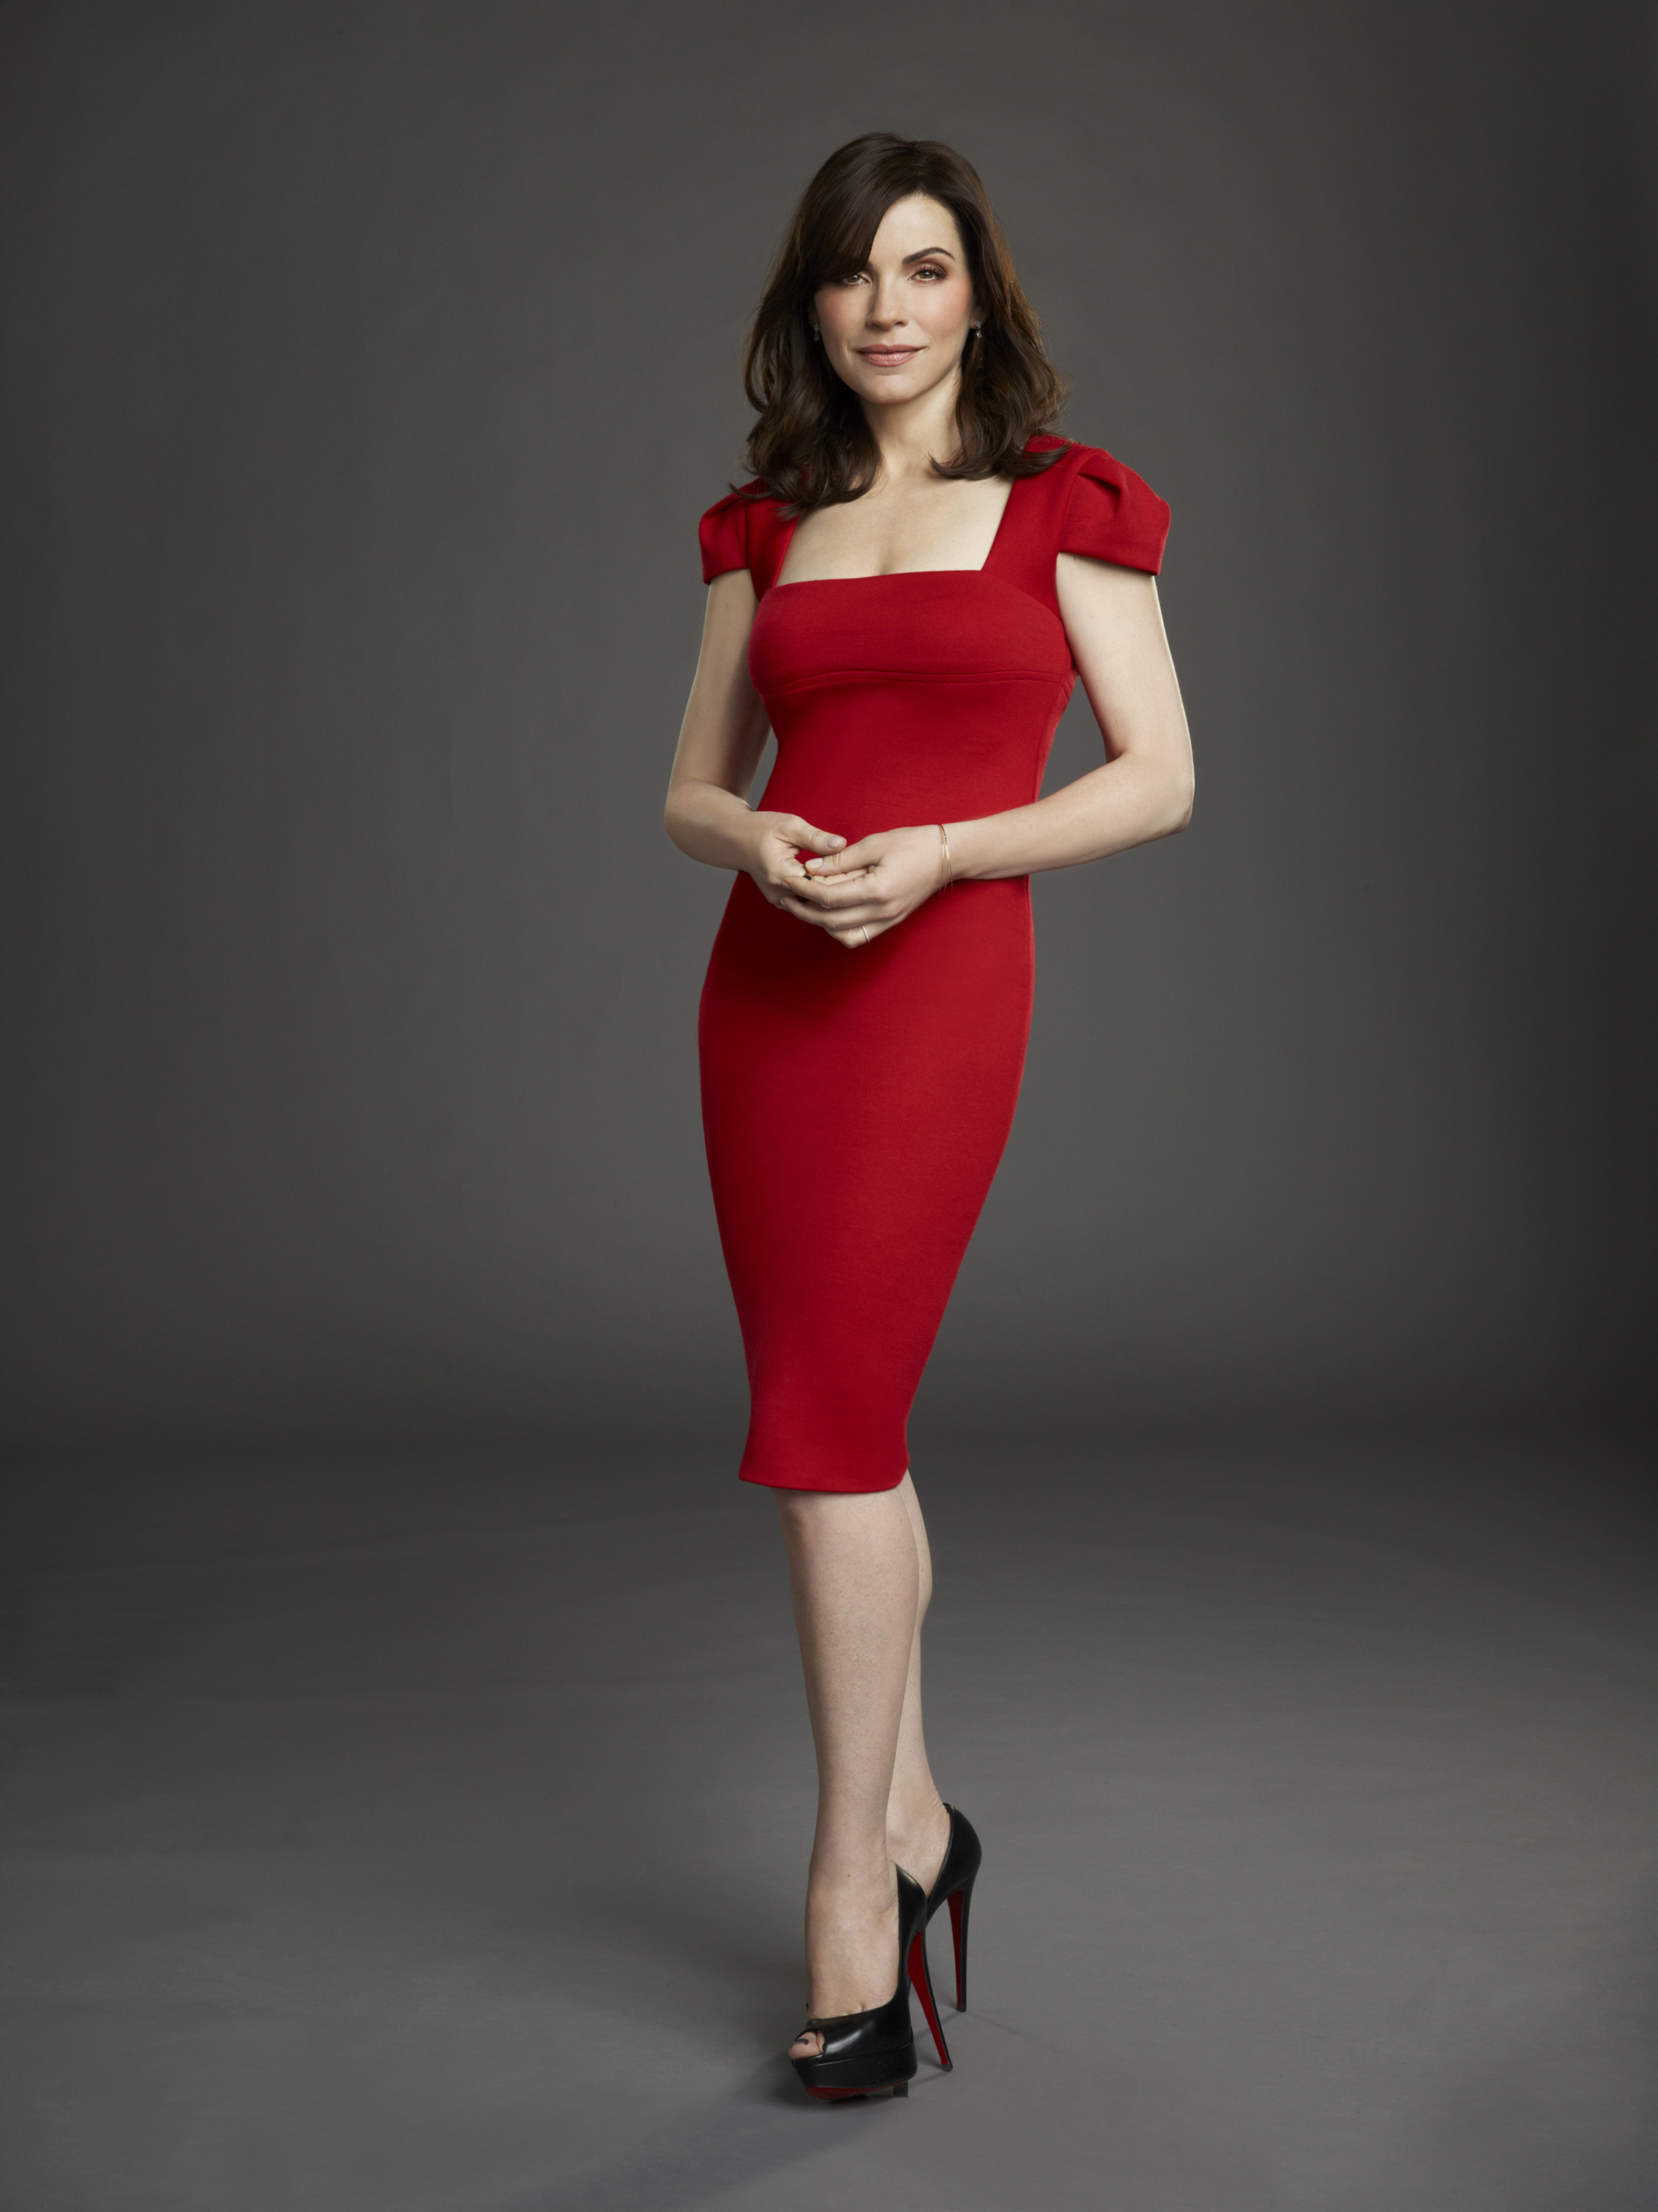 Julianna Margulies good wife